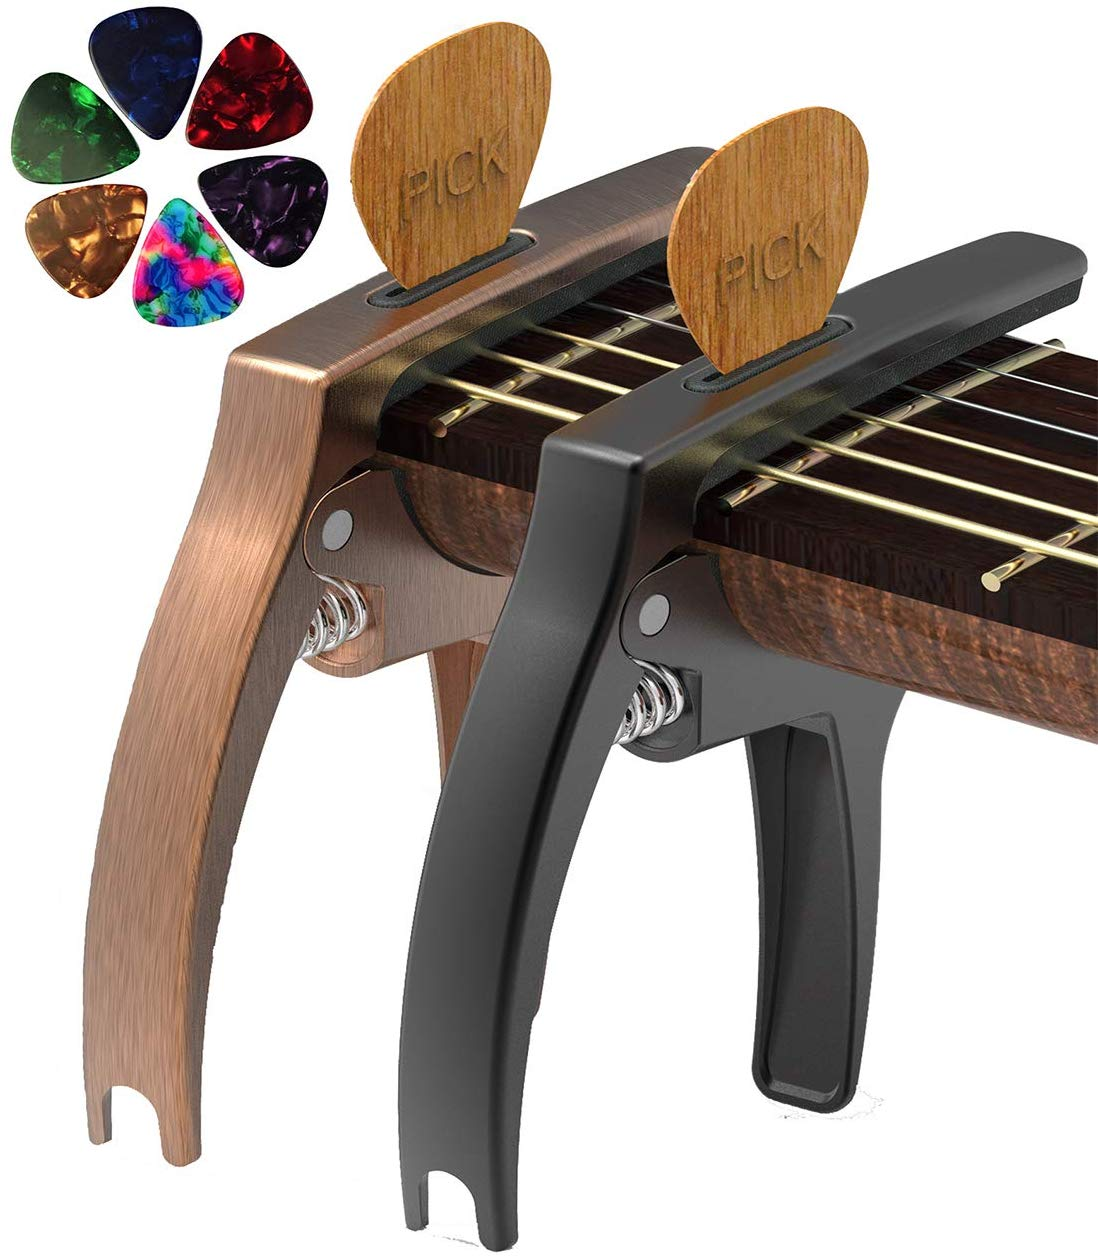 65+ Gifts for Guitar Players in 2020 - 61SNy3xQVgL. AC SL1284